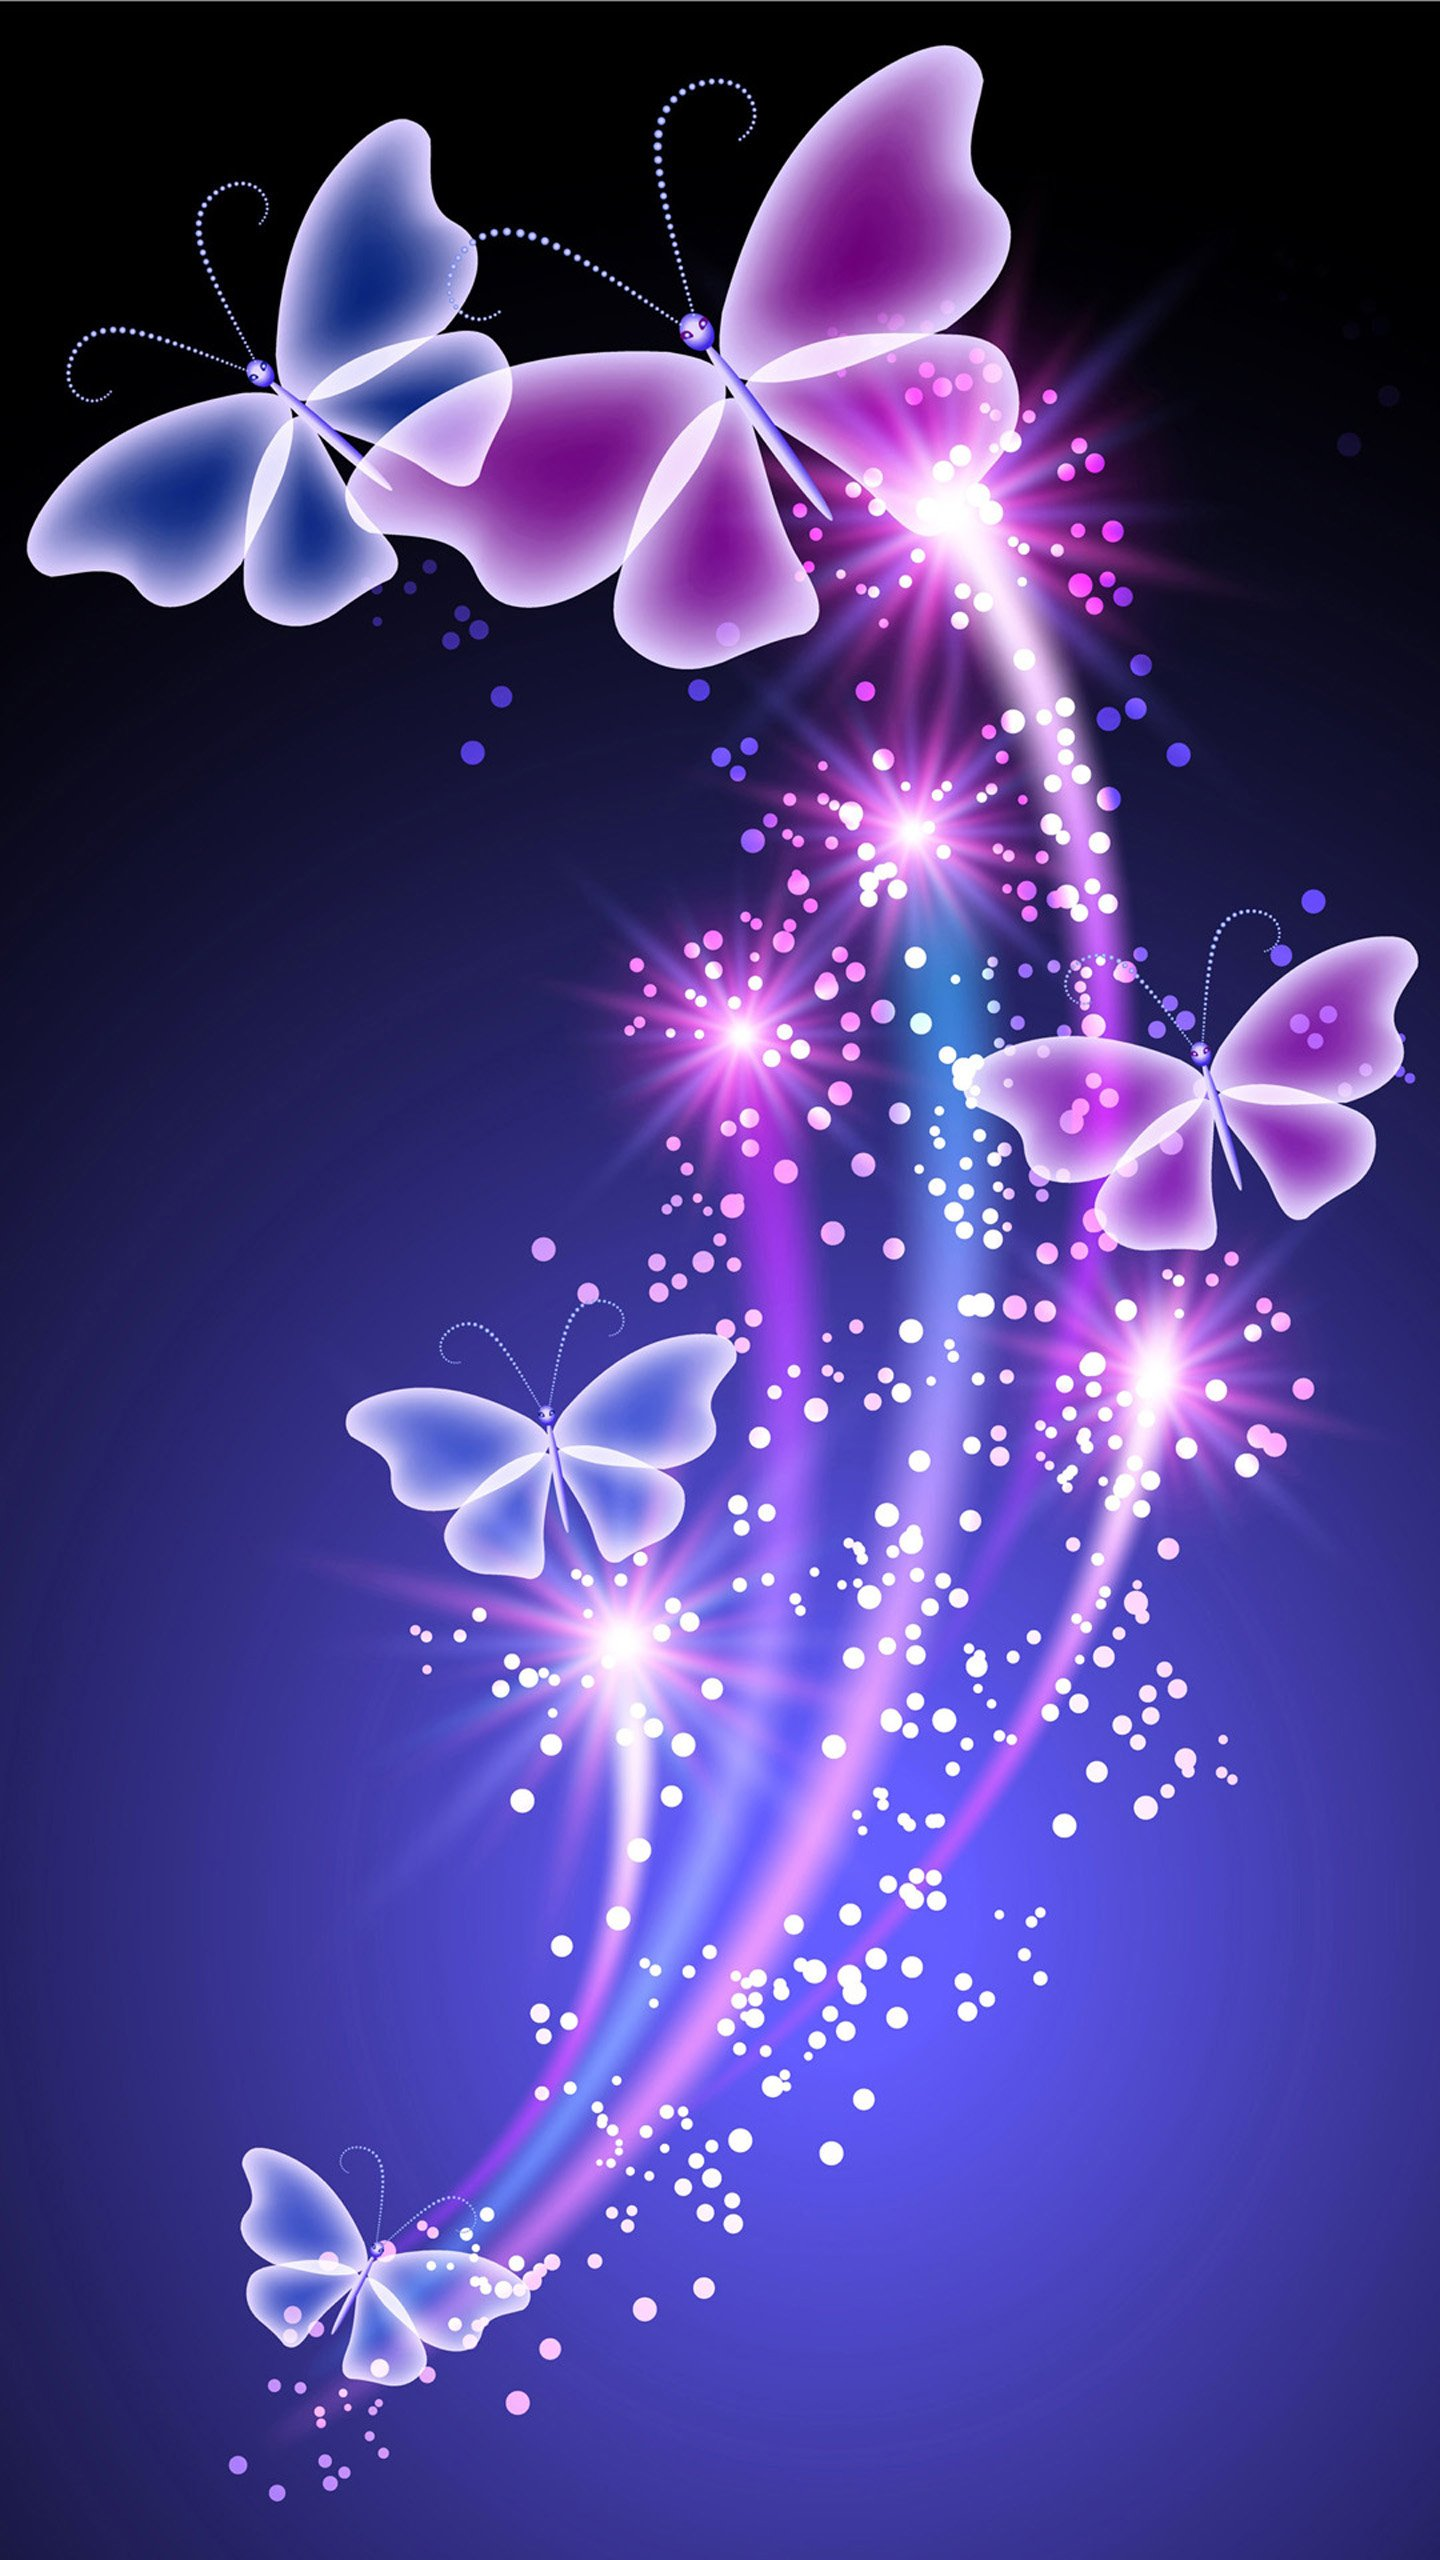 Wallpapers Collection 171Butterfly Wallpapers187 1440x2560